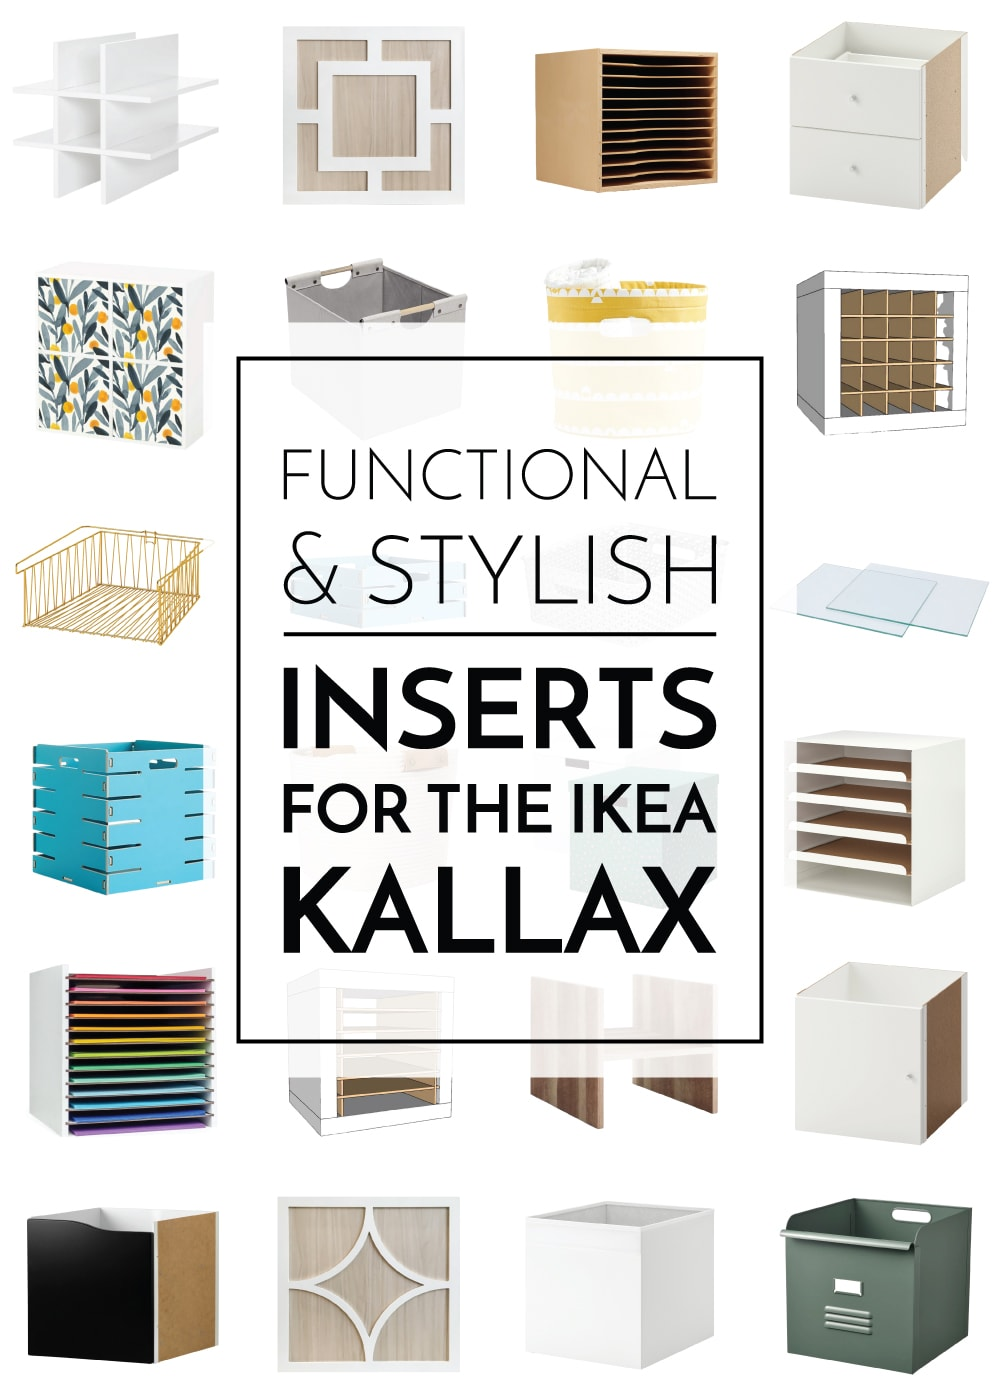 Inserts For the IKEA Kallax